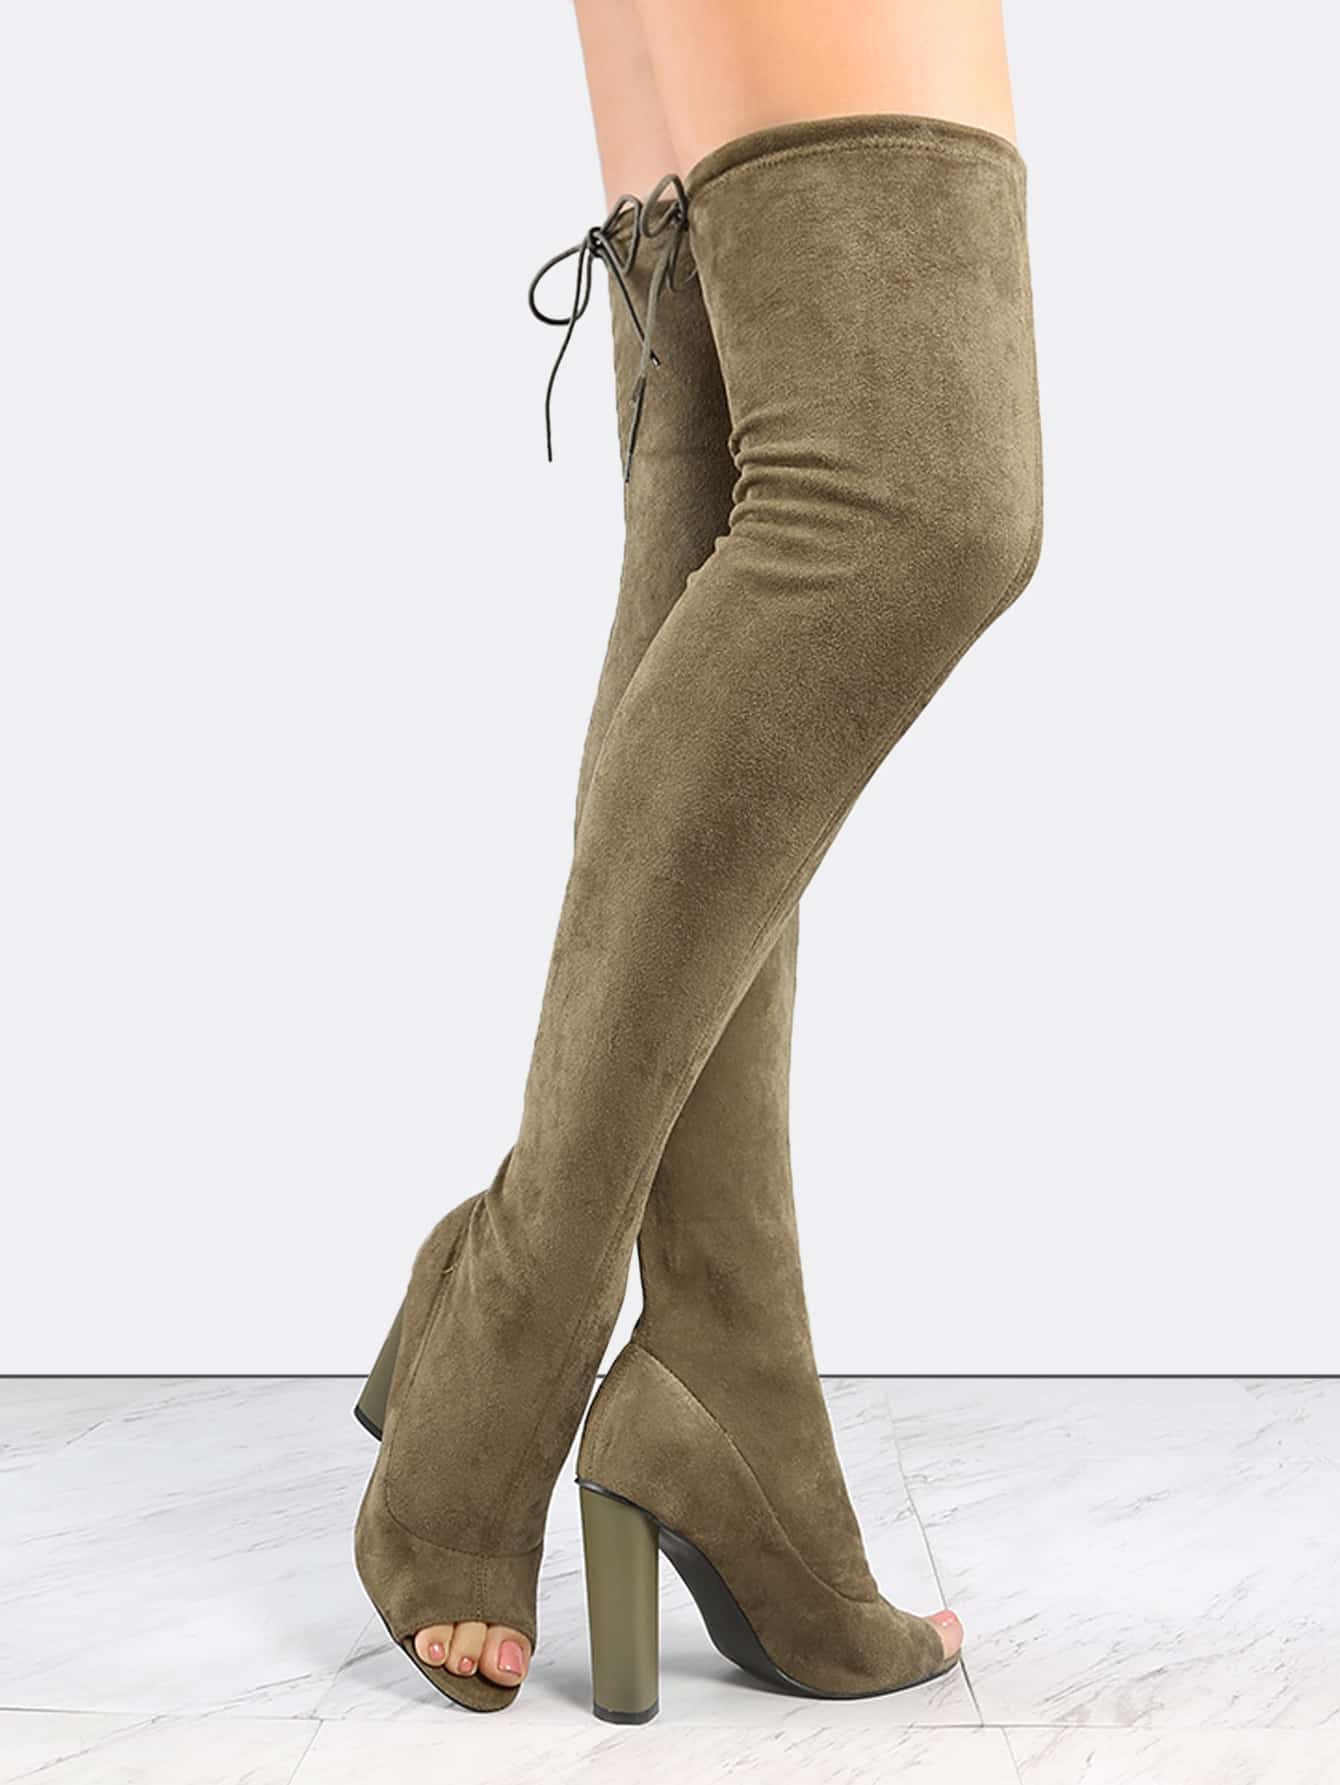 olive green suede peep toe chunky heel the knee boots